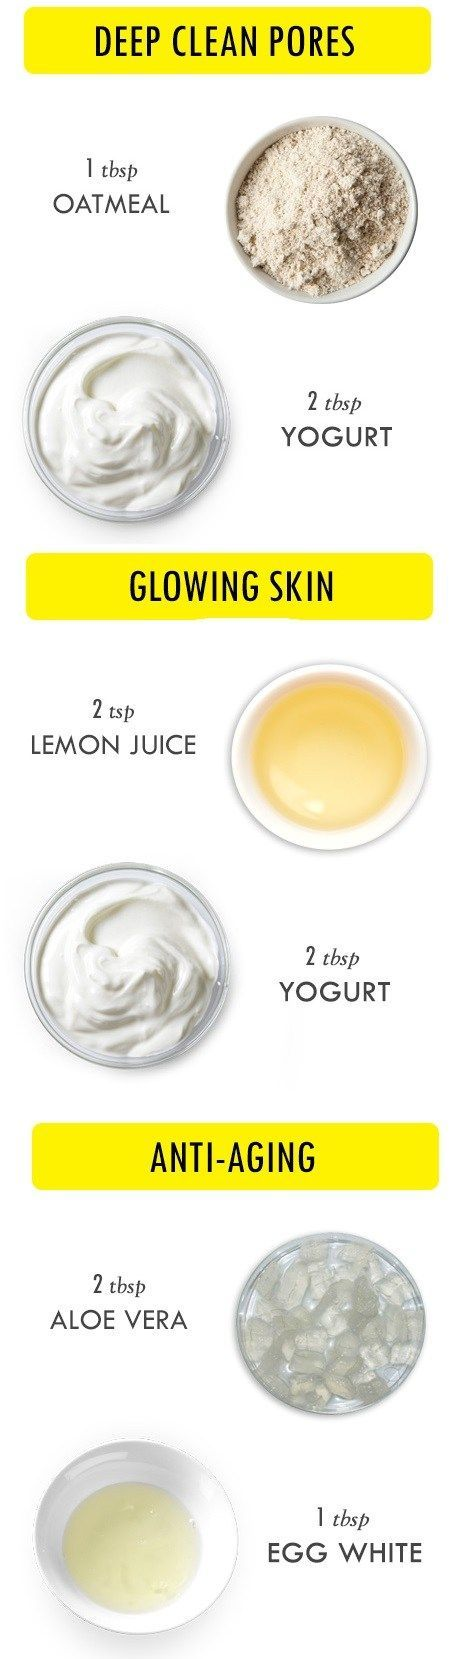 10 egg white peel off mask ideas